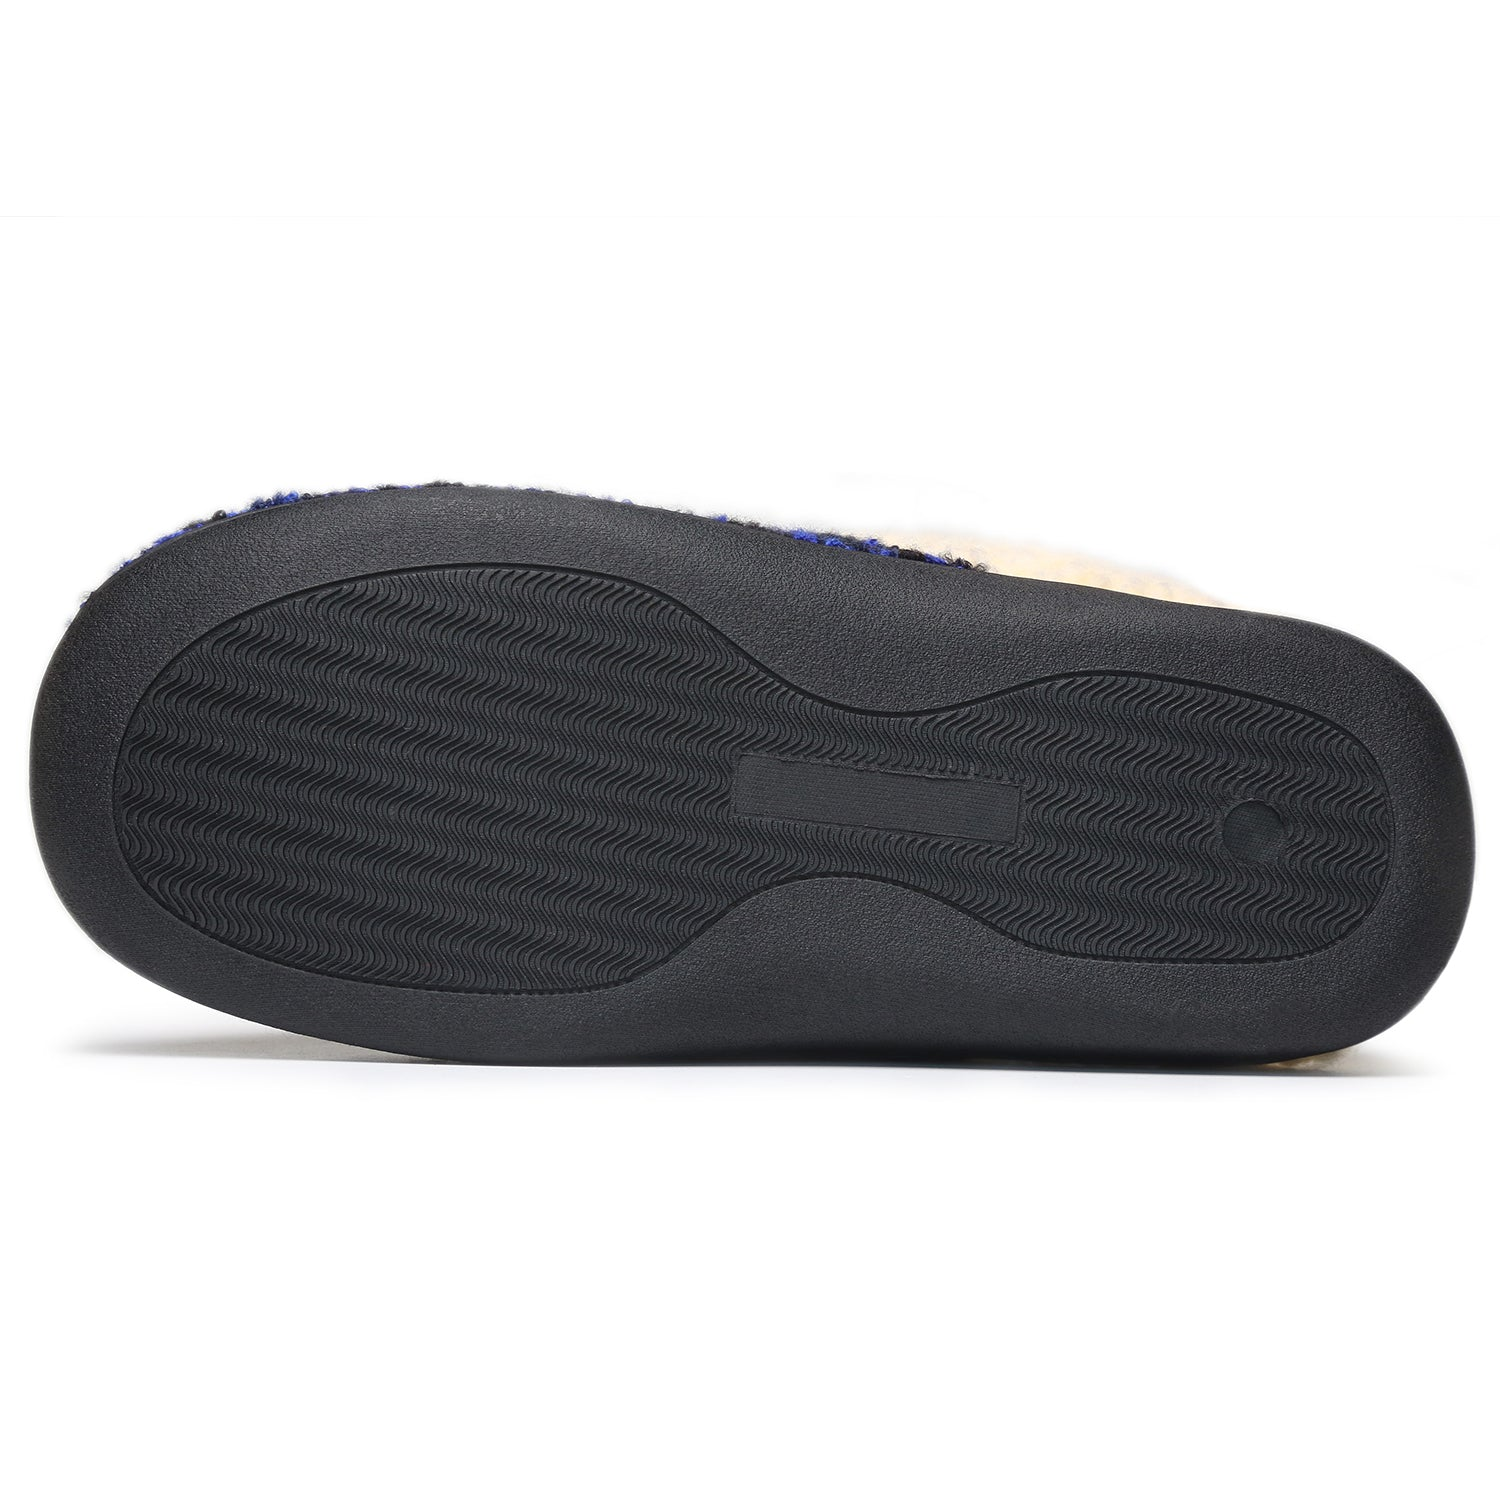 Men's Memory Foam Slippers Comfort Slip On House Shoes